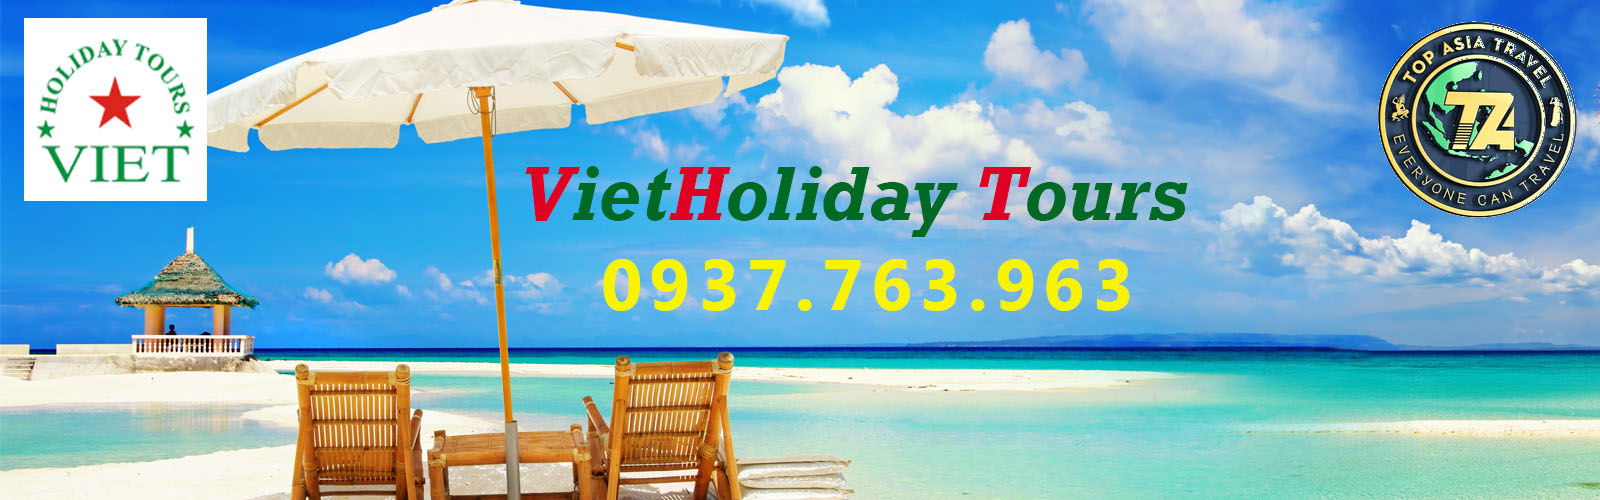 Du lịch VietHoliday Tours